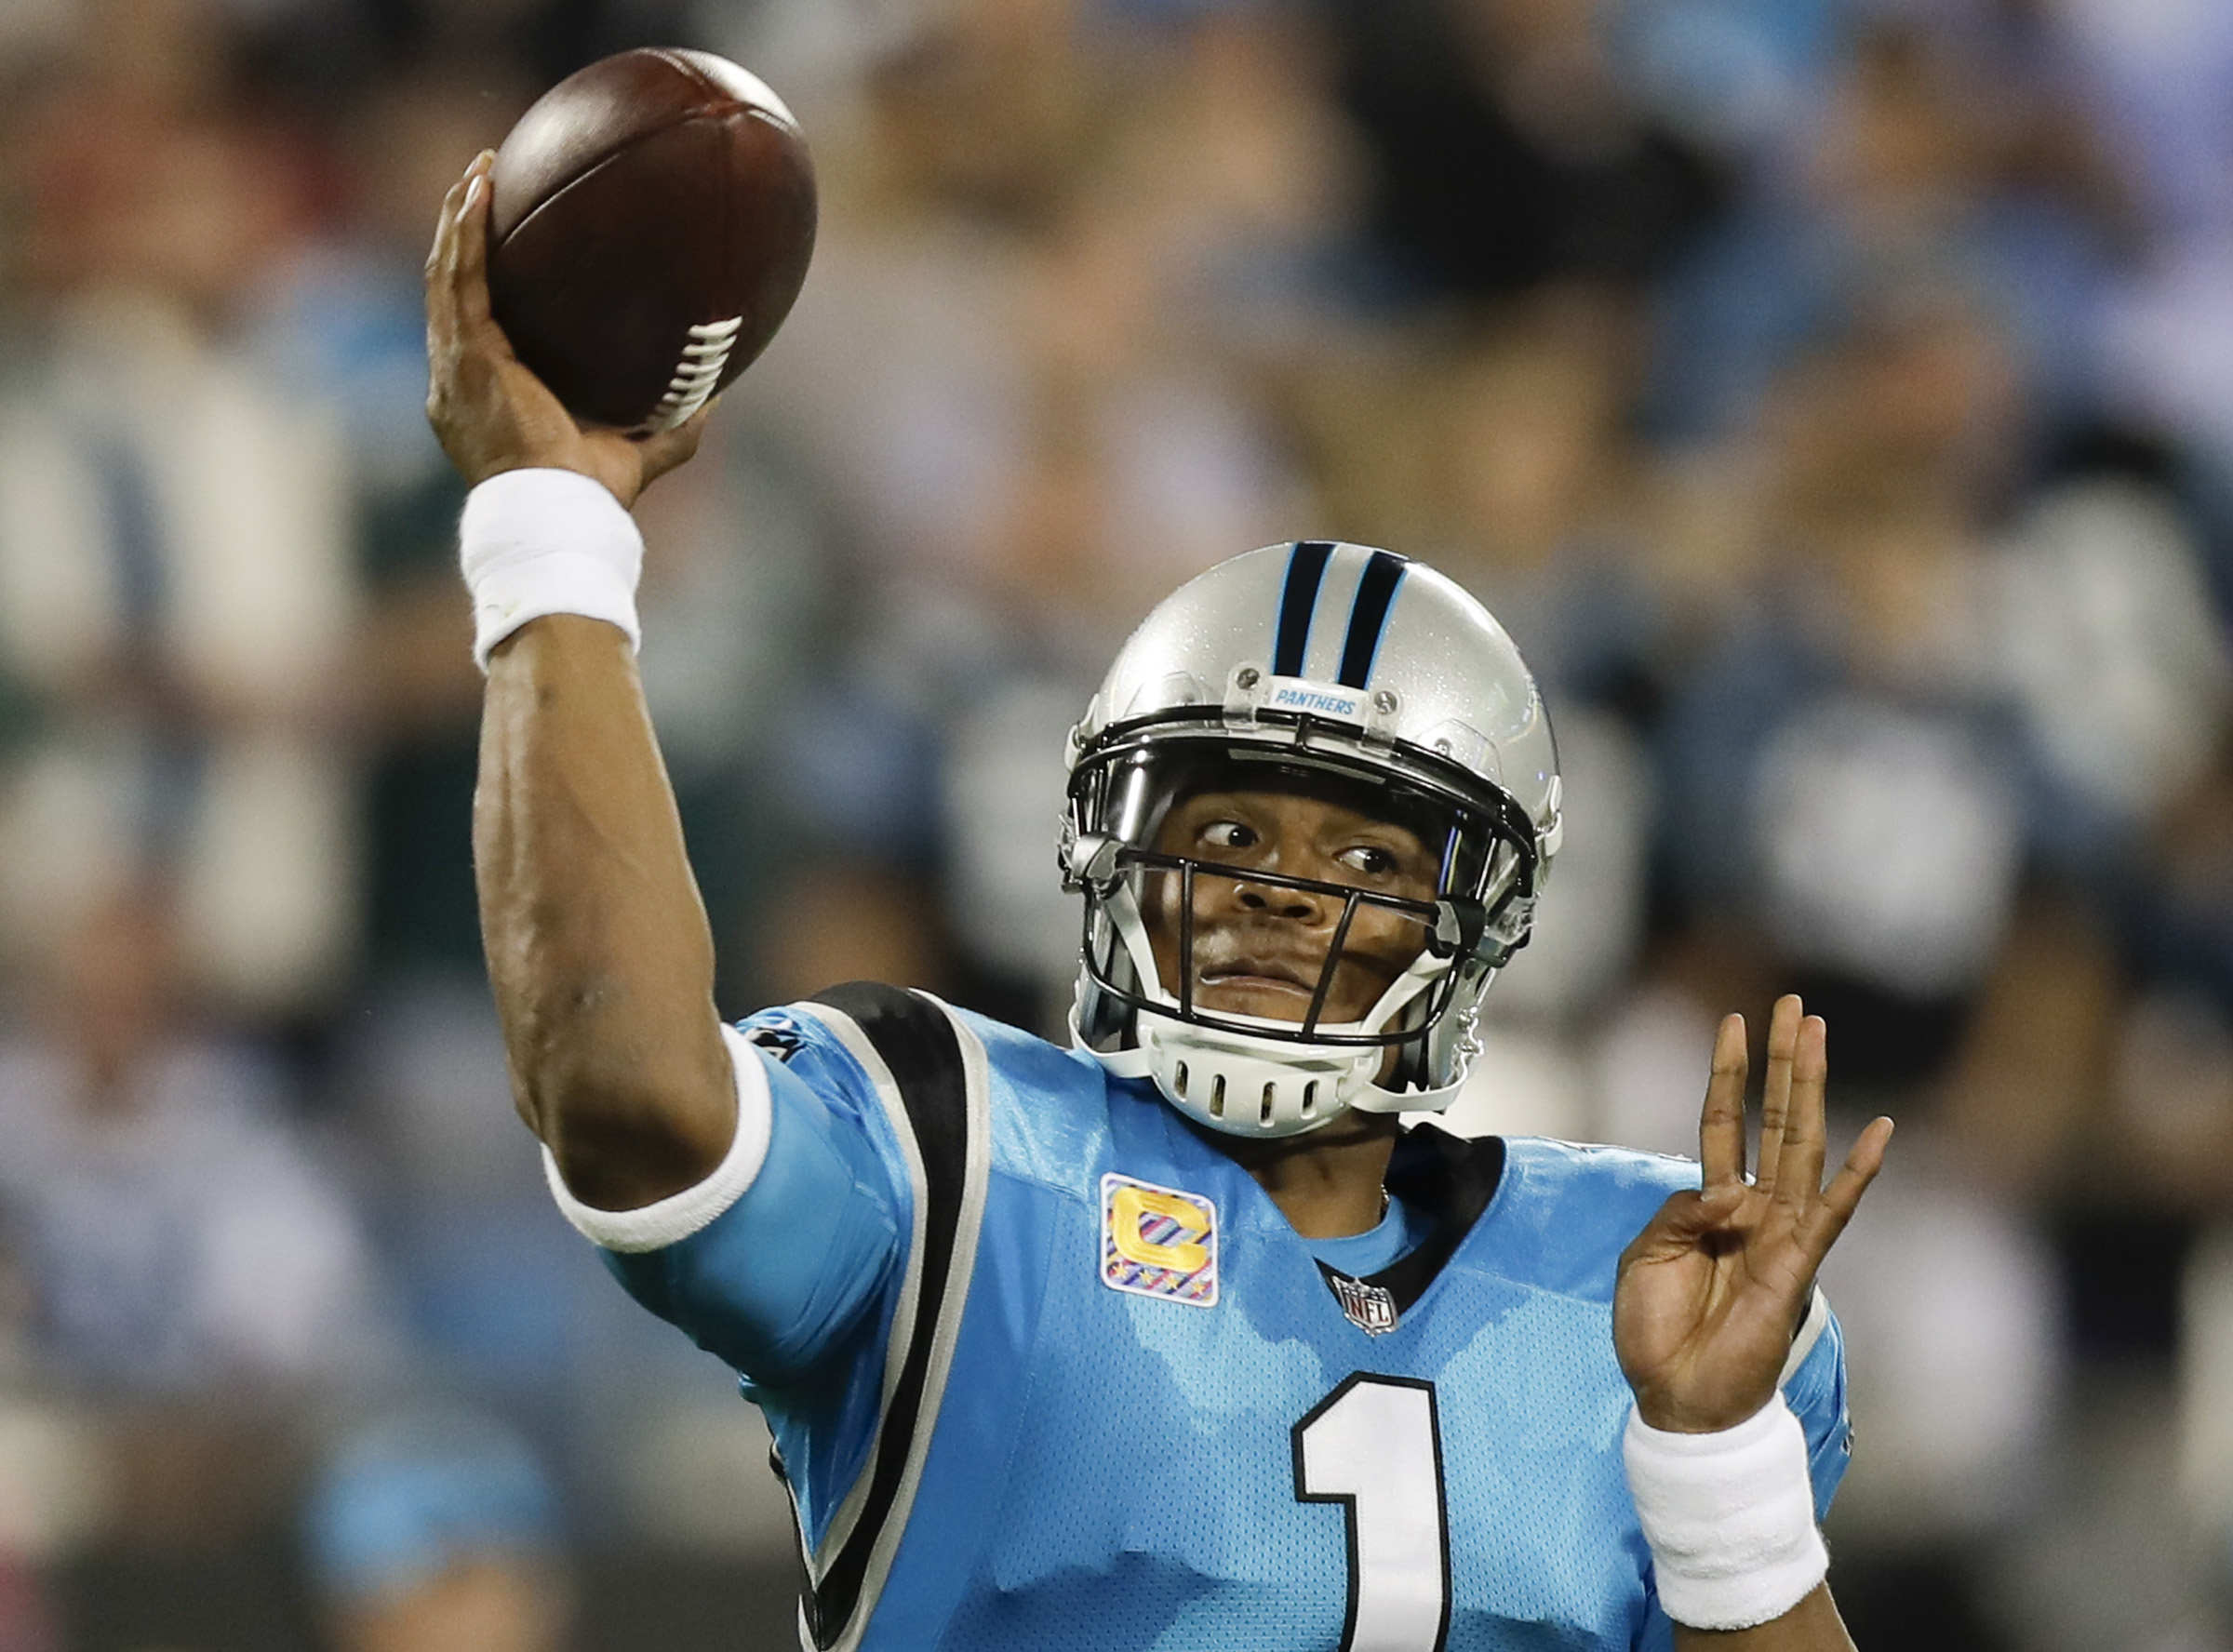 Carolina Panthers quarterback Cam Newton throws the football against the Eagles on Thursday, October 12, 2017 in Charlotte, NC.